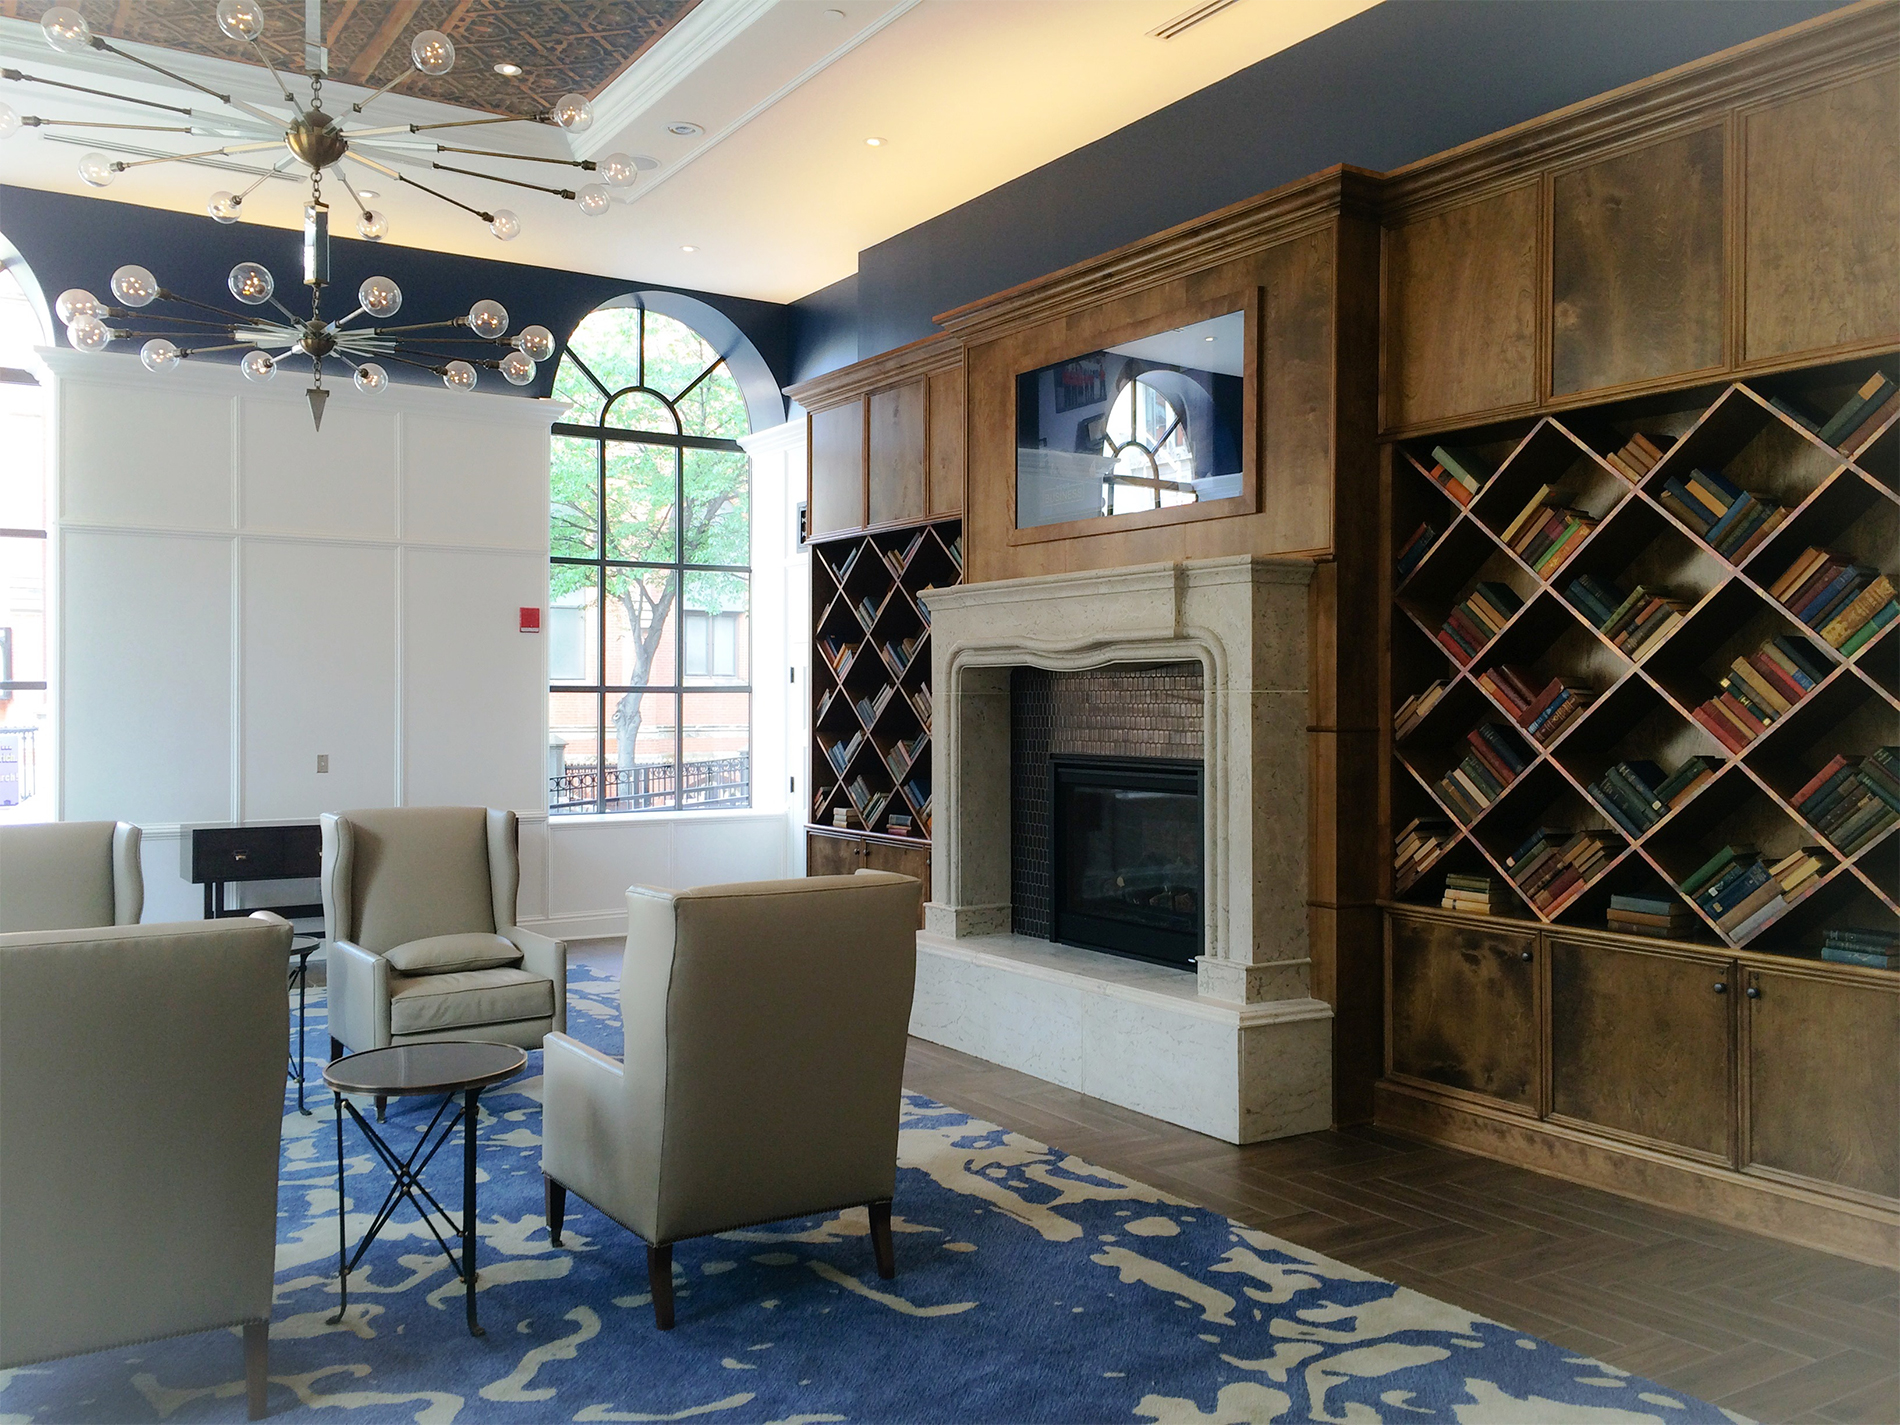 Ihg 39 s hotel indigo brand opens in downtown baltimore for Top boutique hotel brands